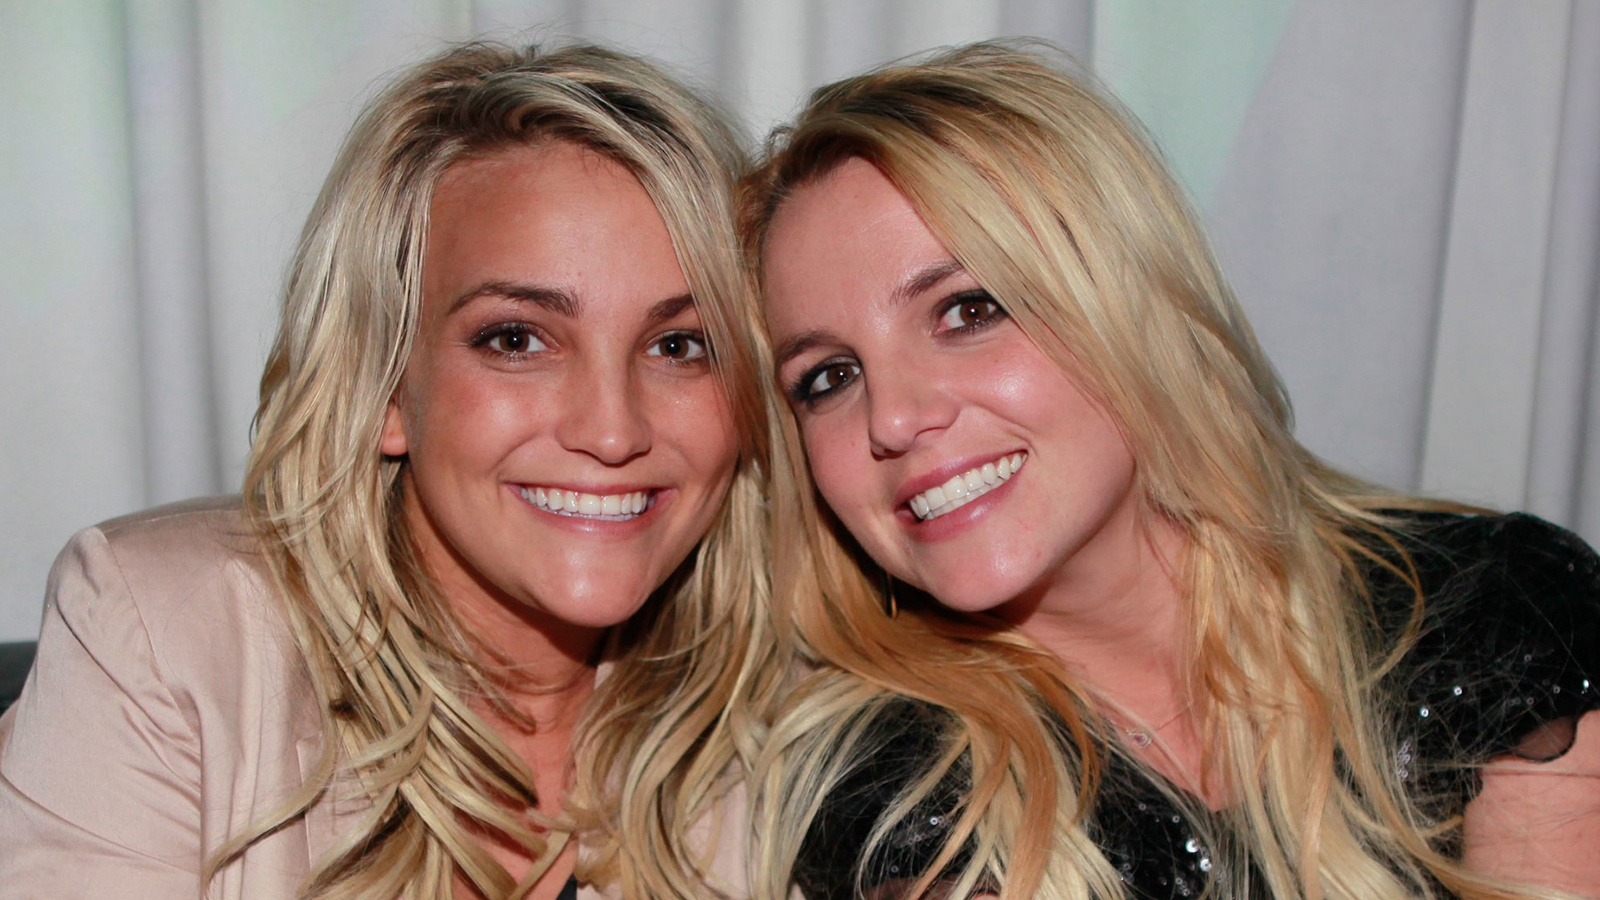 What Jamie Lynn Spears' Really Thinks Of #FreeBritney